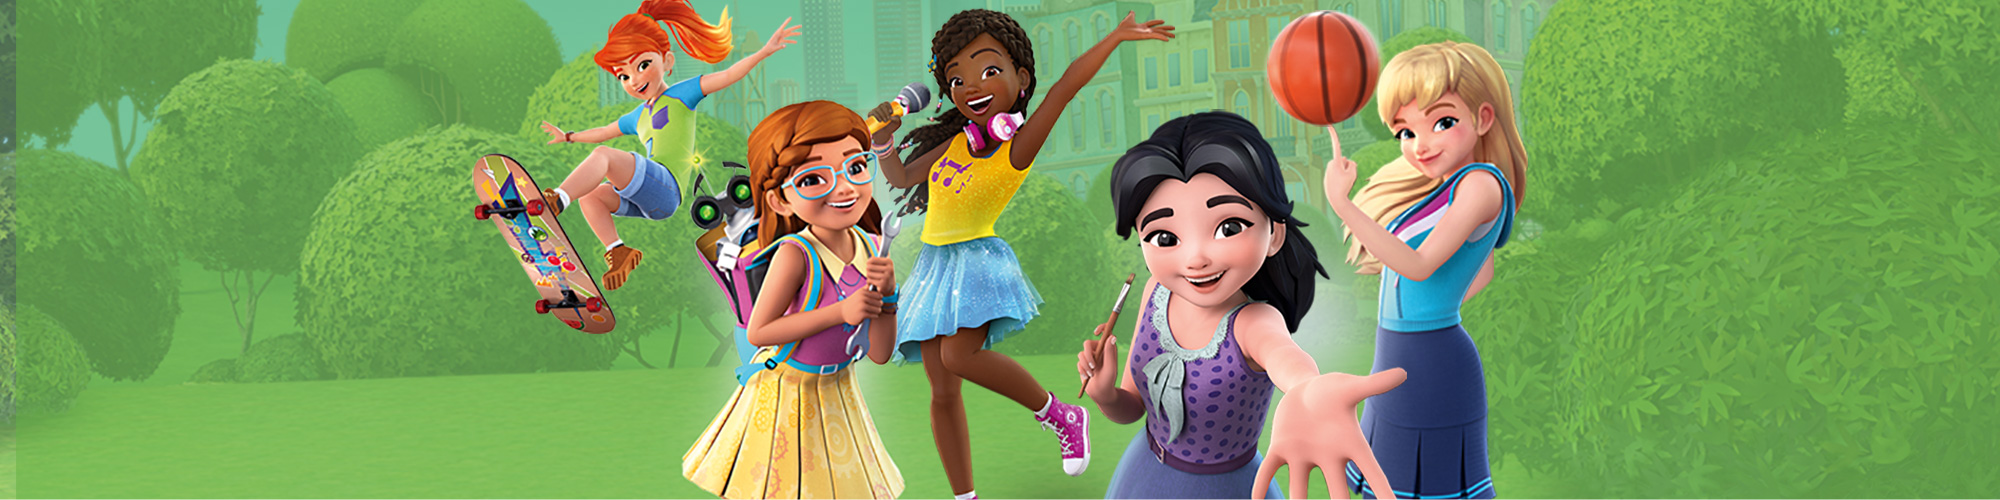 Lego Friends Heartlake Rush Unity Connect